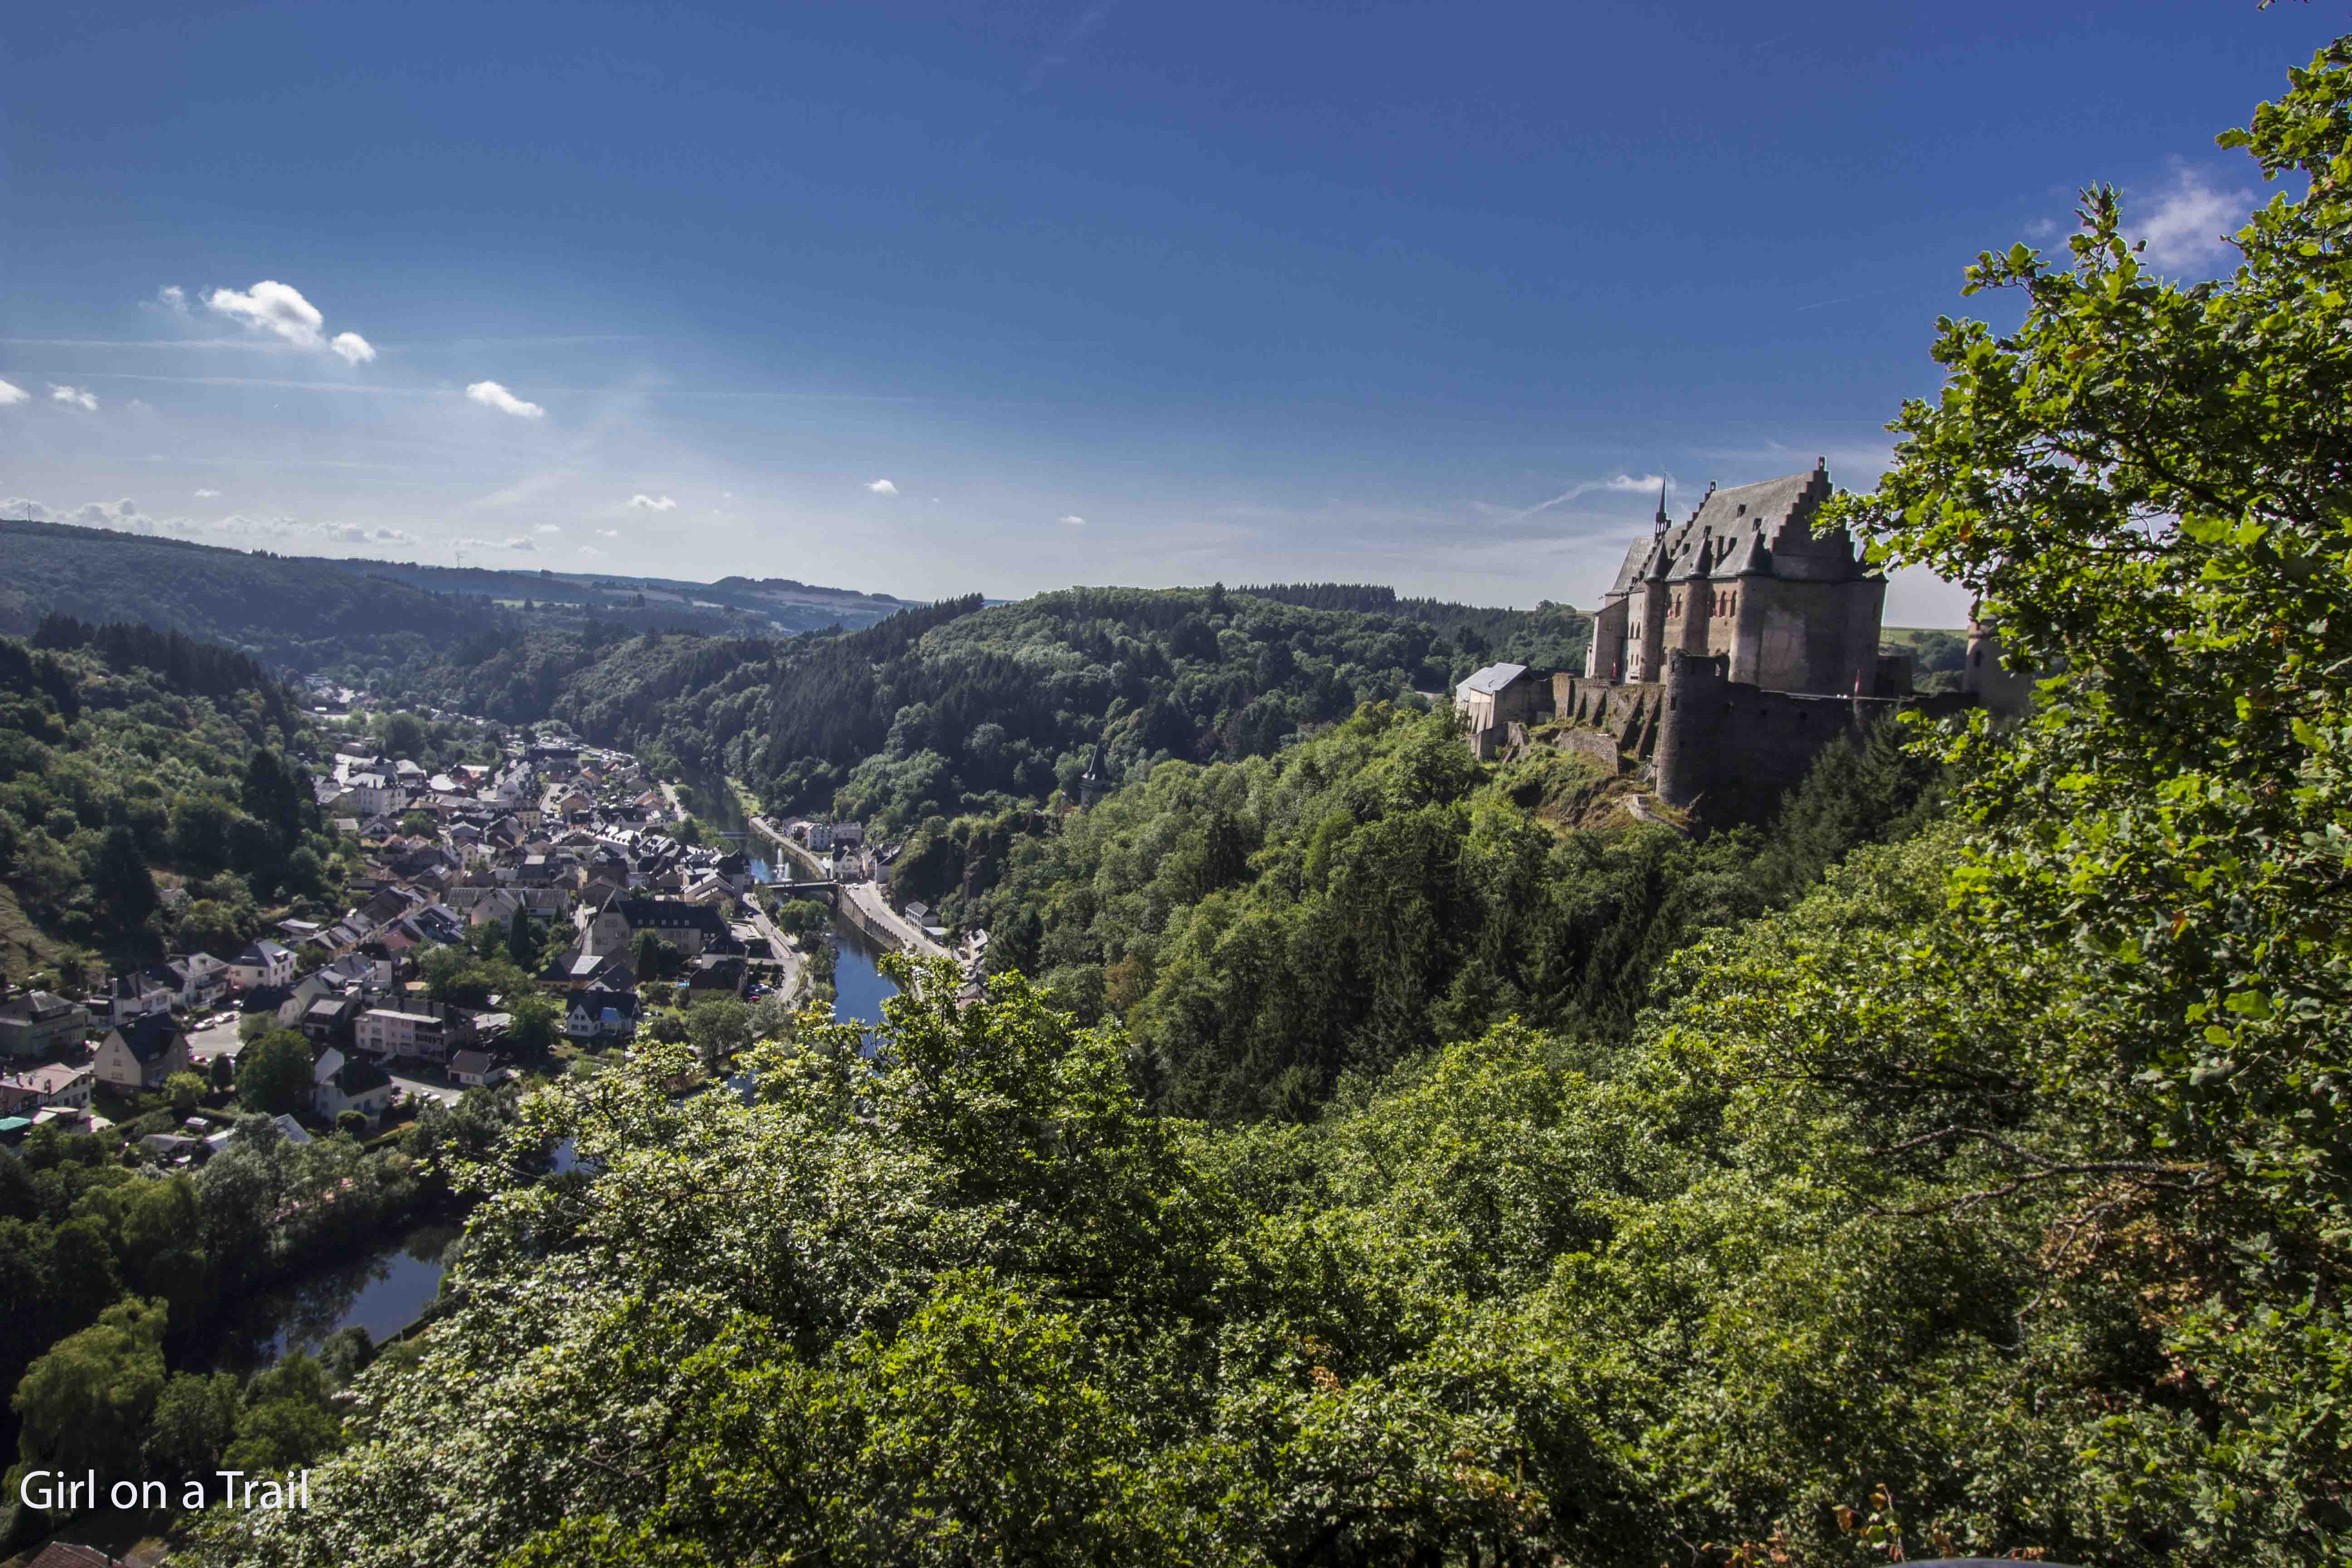 Girl on a Trail: Luksemburg – Vianden